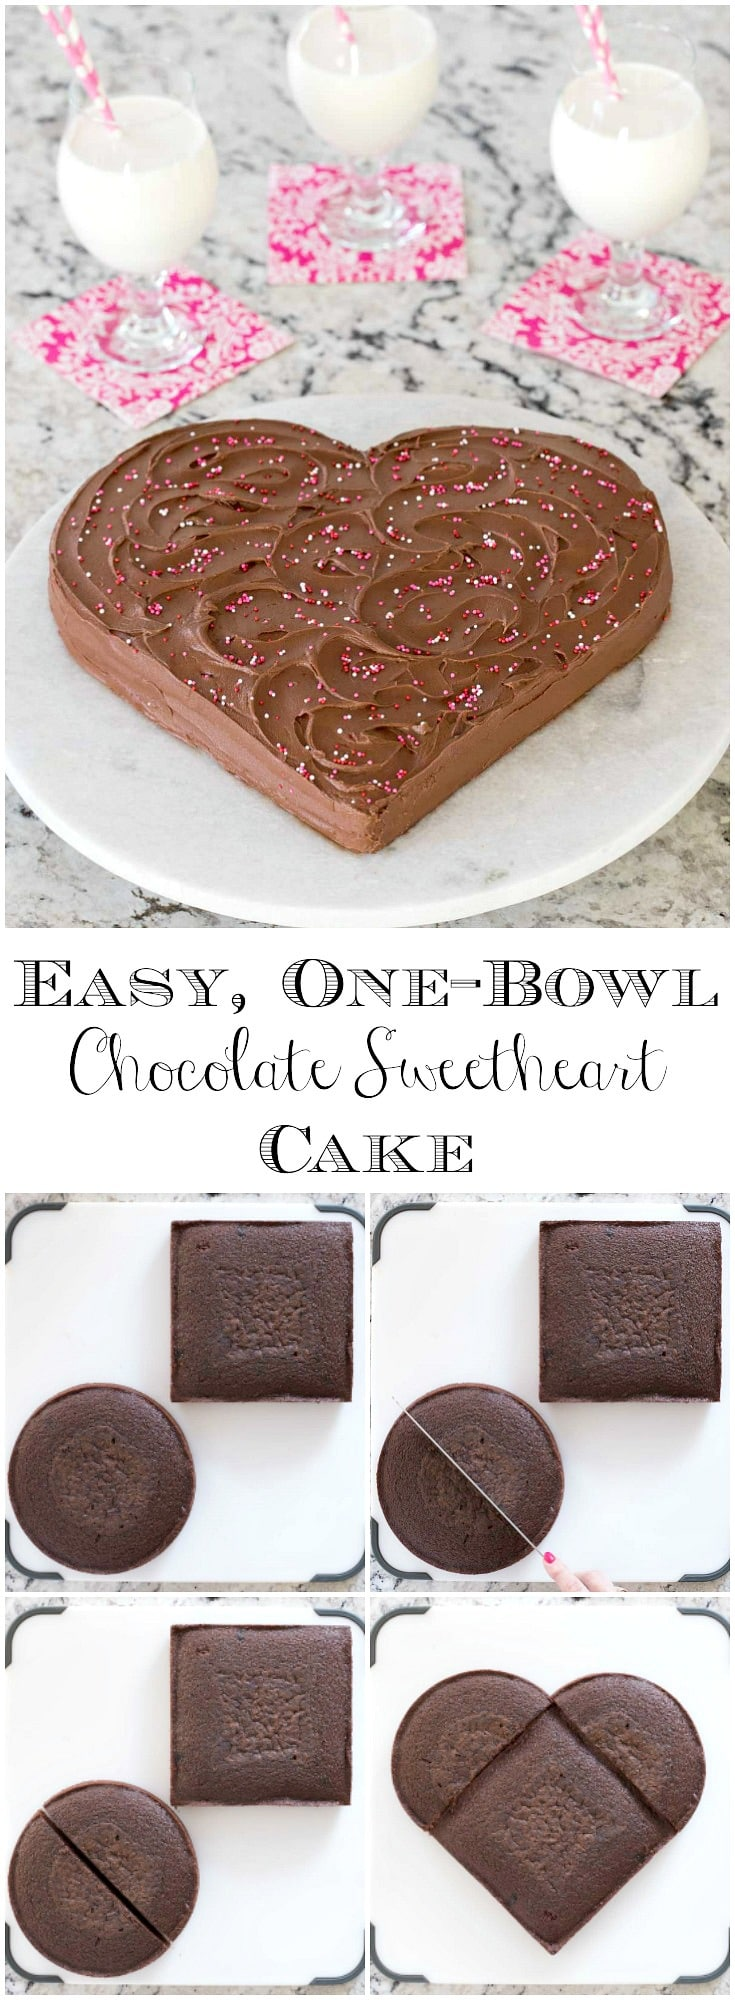 This Easy, One-Bowl Chocolate Sweetheart Cake is moist, delicious and all dressed up in Valentine clothes! Easy step by step instructions included! #chocolatecake #valentinesday #texassheetcake #valentinesdessert #easycakerecipe #onebowlcake #easycakedecorating #weddingcake